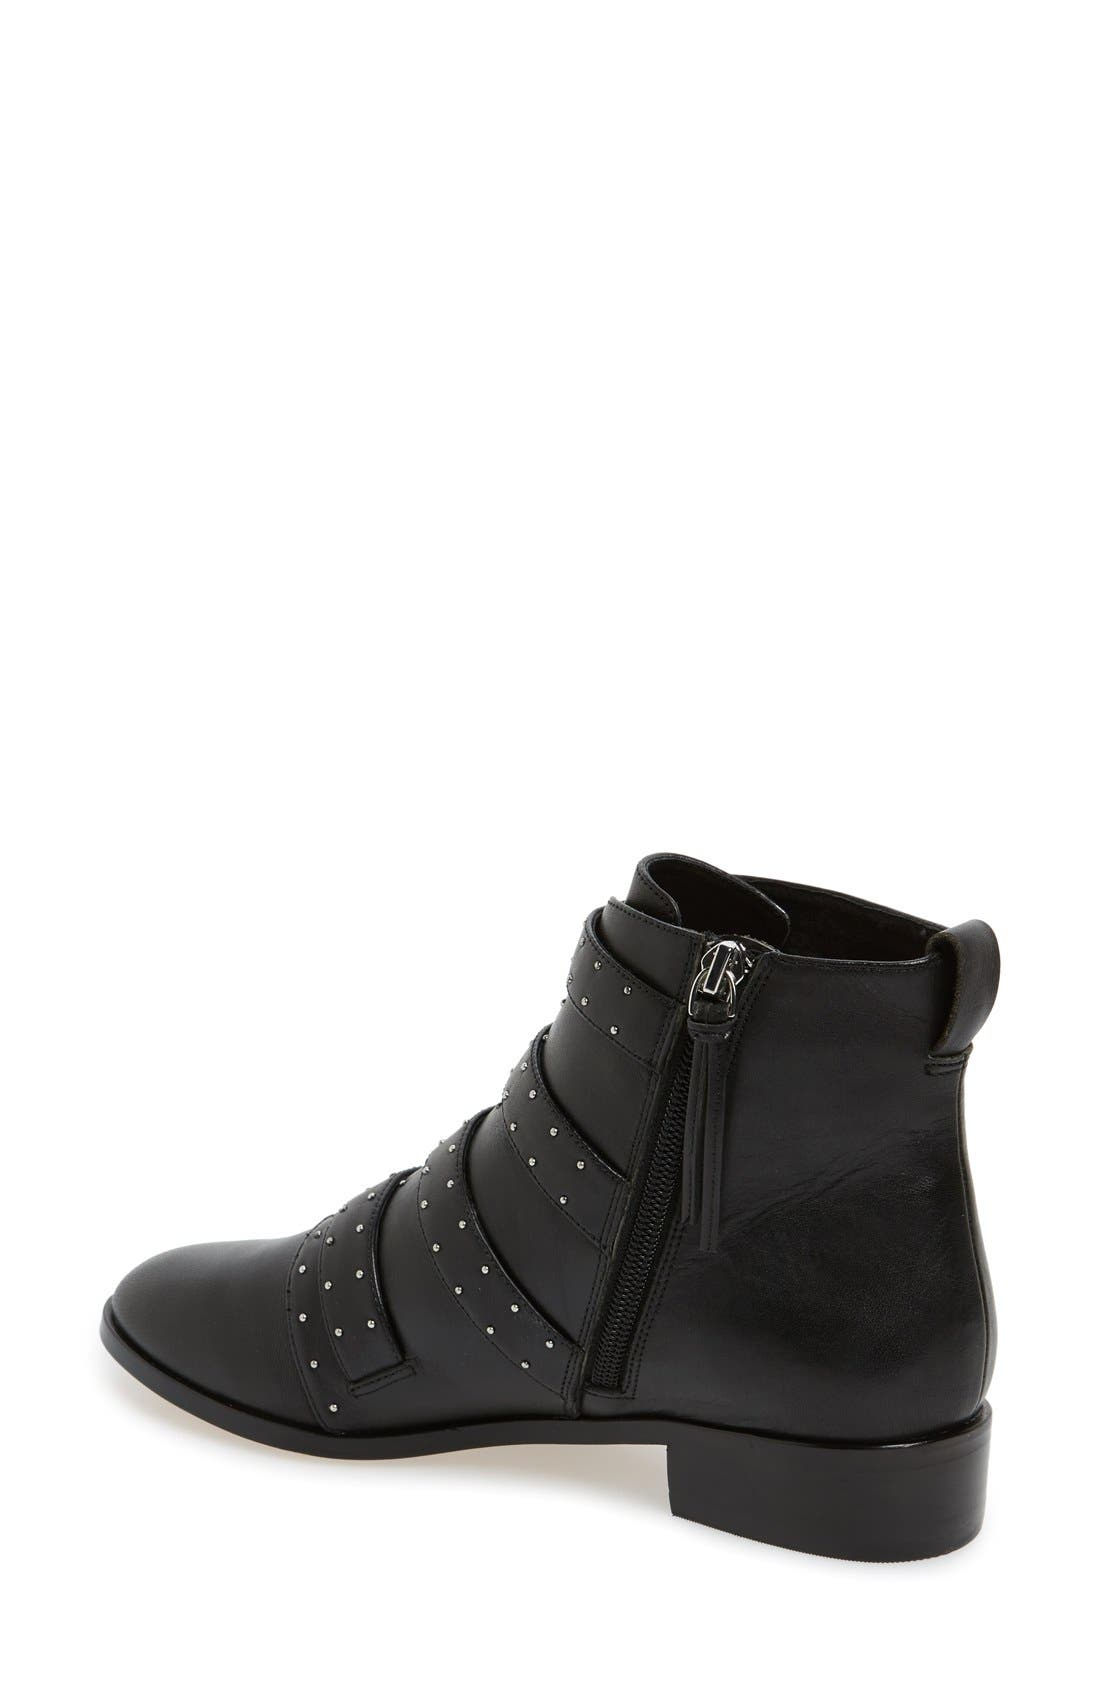 REBECCA MINKOFF,                             'Maddox' Buckle Bootie,                             Alternate thumbnail 3, color,                             001